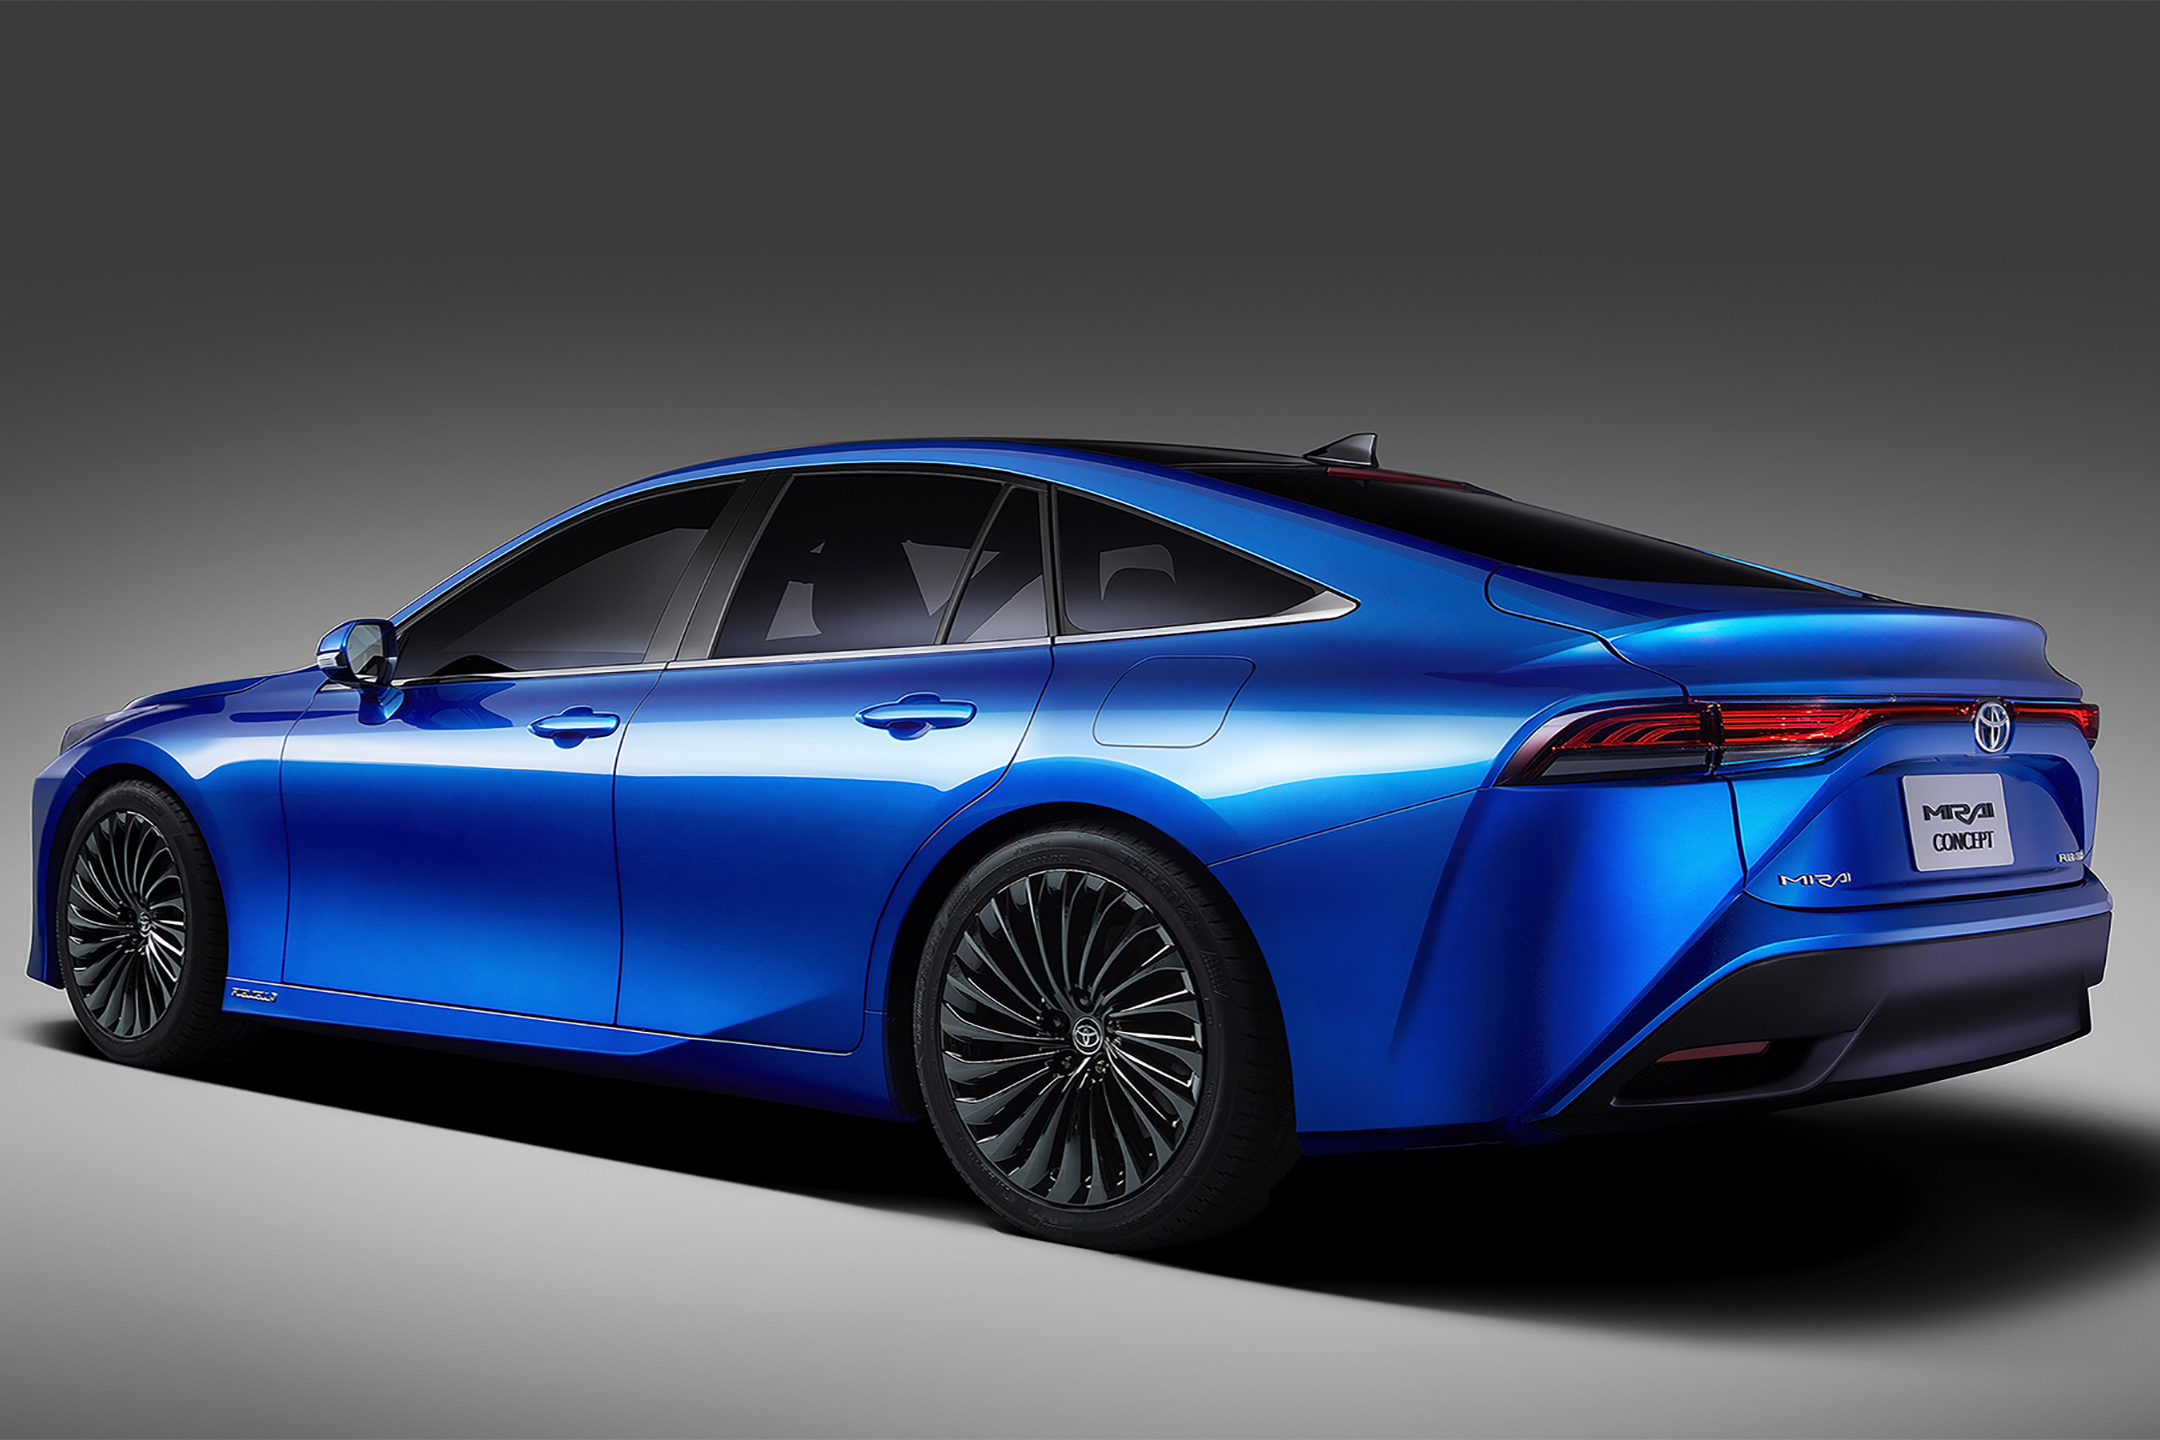 Next-Gen Toyota Mirai Fuel-Cell Electric Car Uses 'Lex' Appeal to Attract Suitors